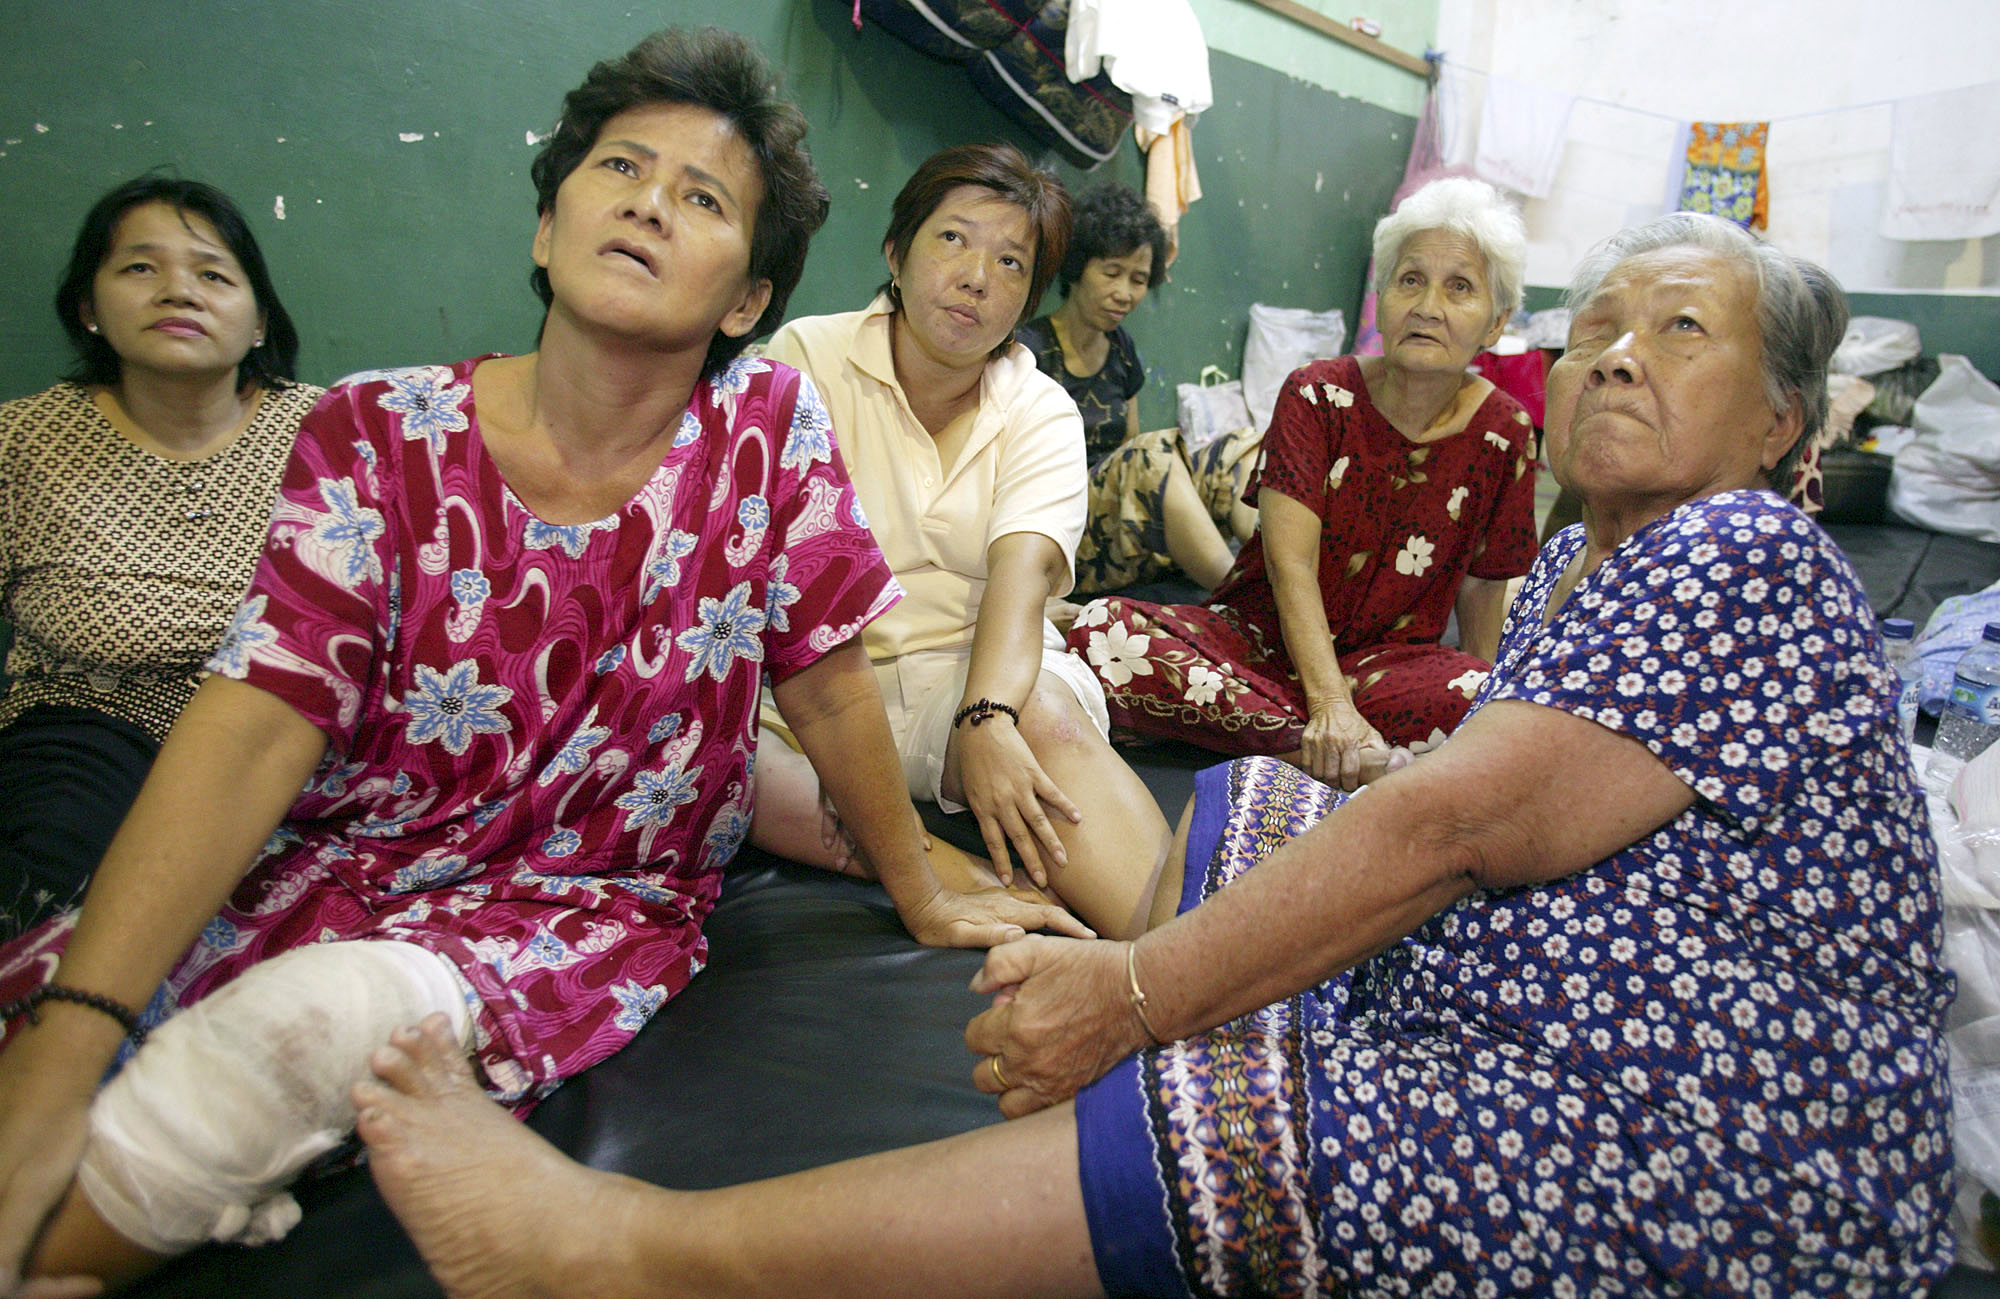 Survivors of the Dec. 26 tsunami describe how their homes were destroyed by the waves. UMNS photo by Mike DuBose.